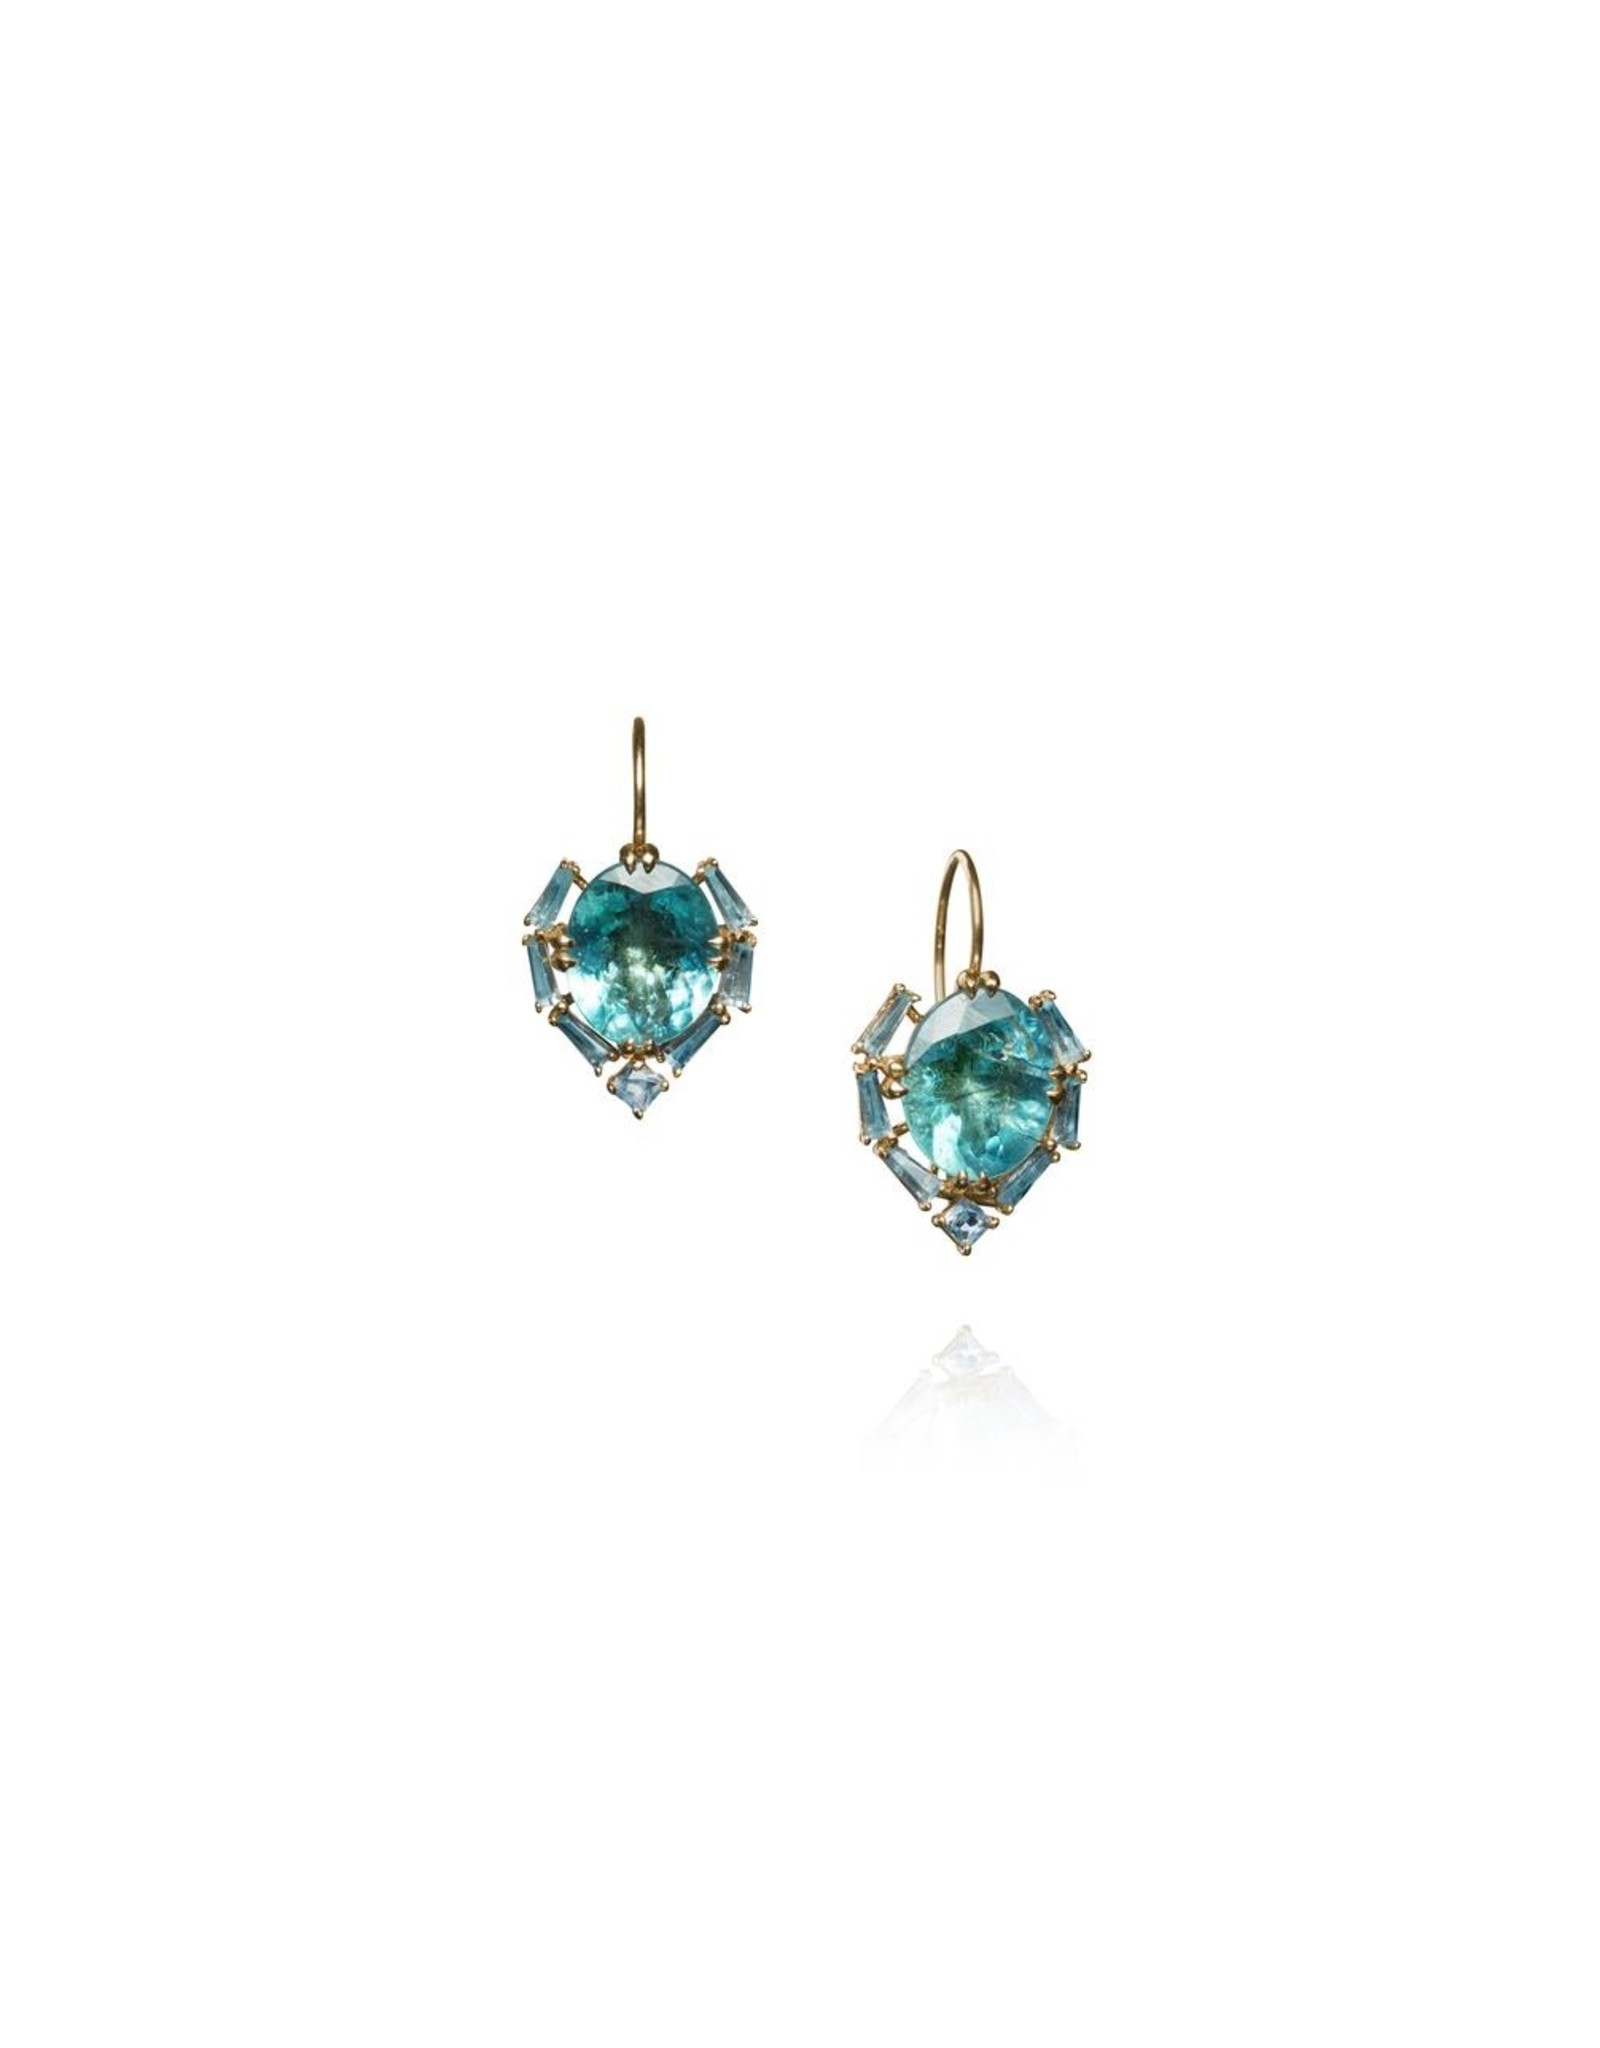 Nak Armstrong Nak Armstrong Satchel Earrings (Color: apatite, blue zircon)